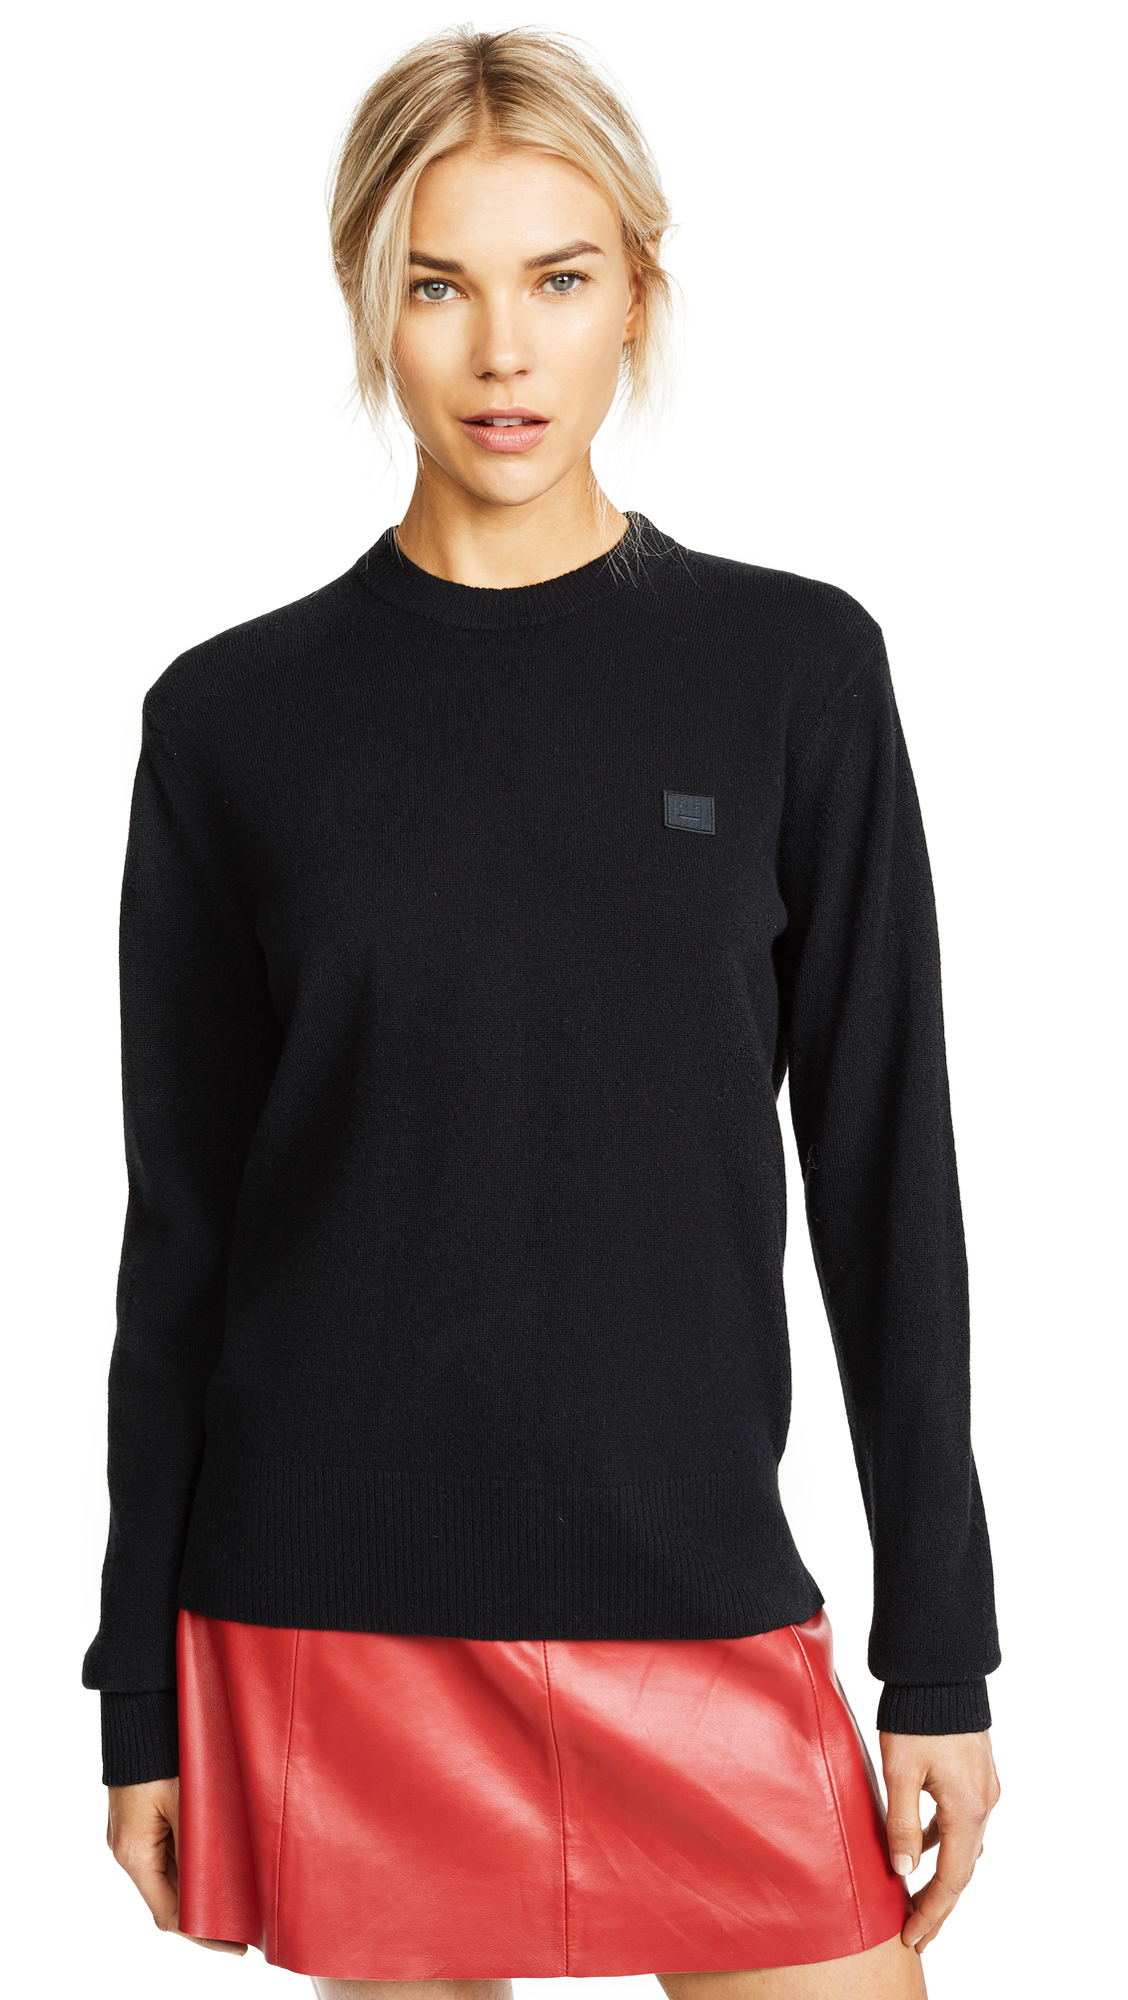 Nalon Face Embroidered Knit Sweater In Black